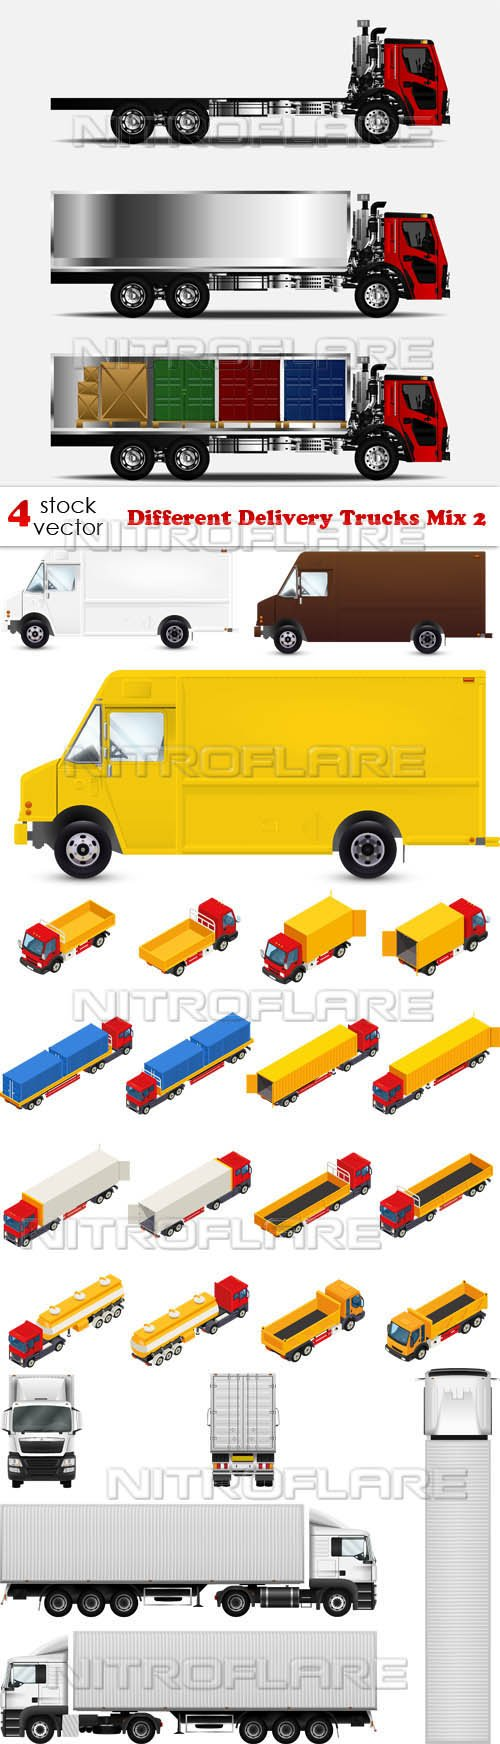 Vectors - Different Delivery Trucks Mix 2